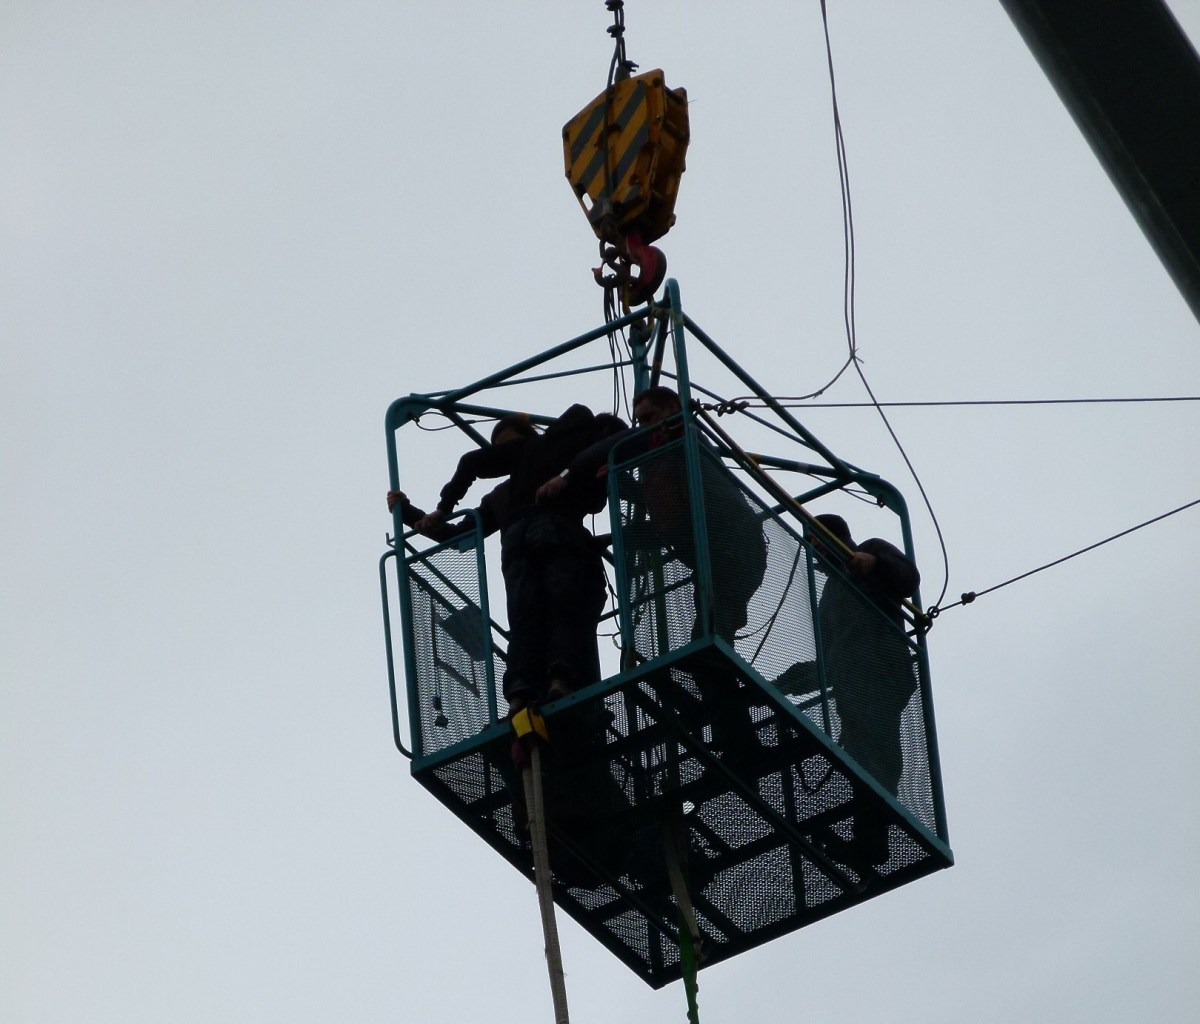 Durham Cathedral Bungee Jumping